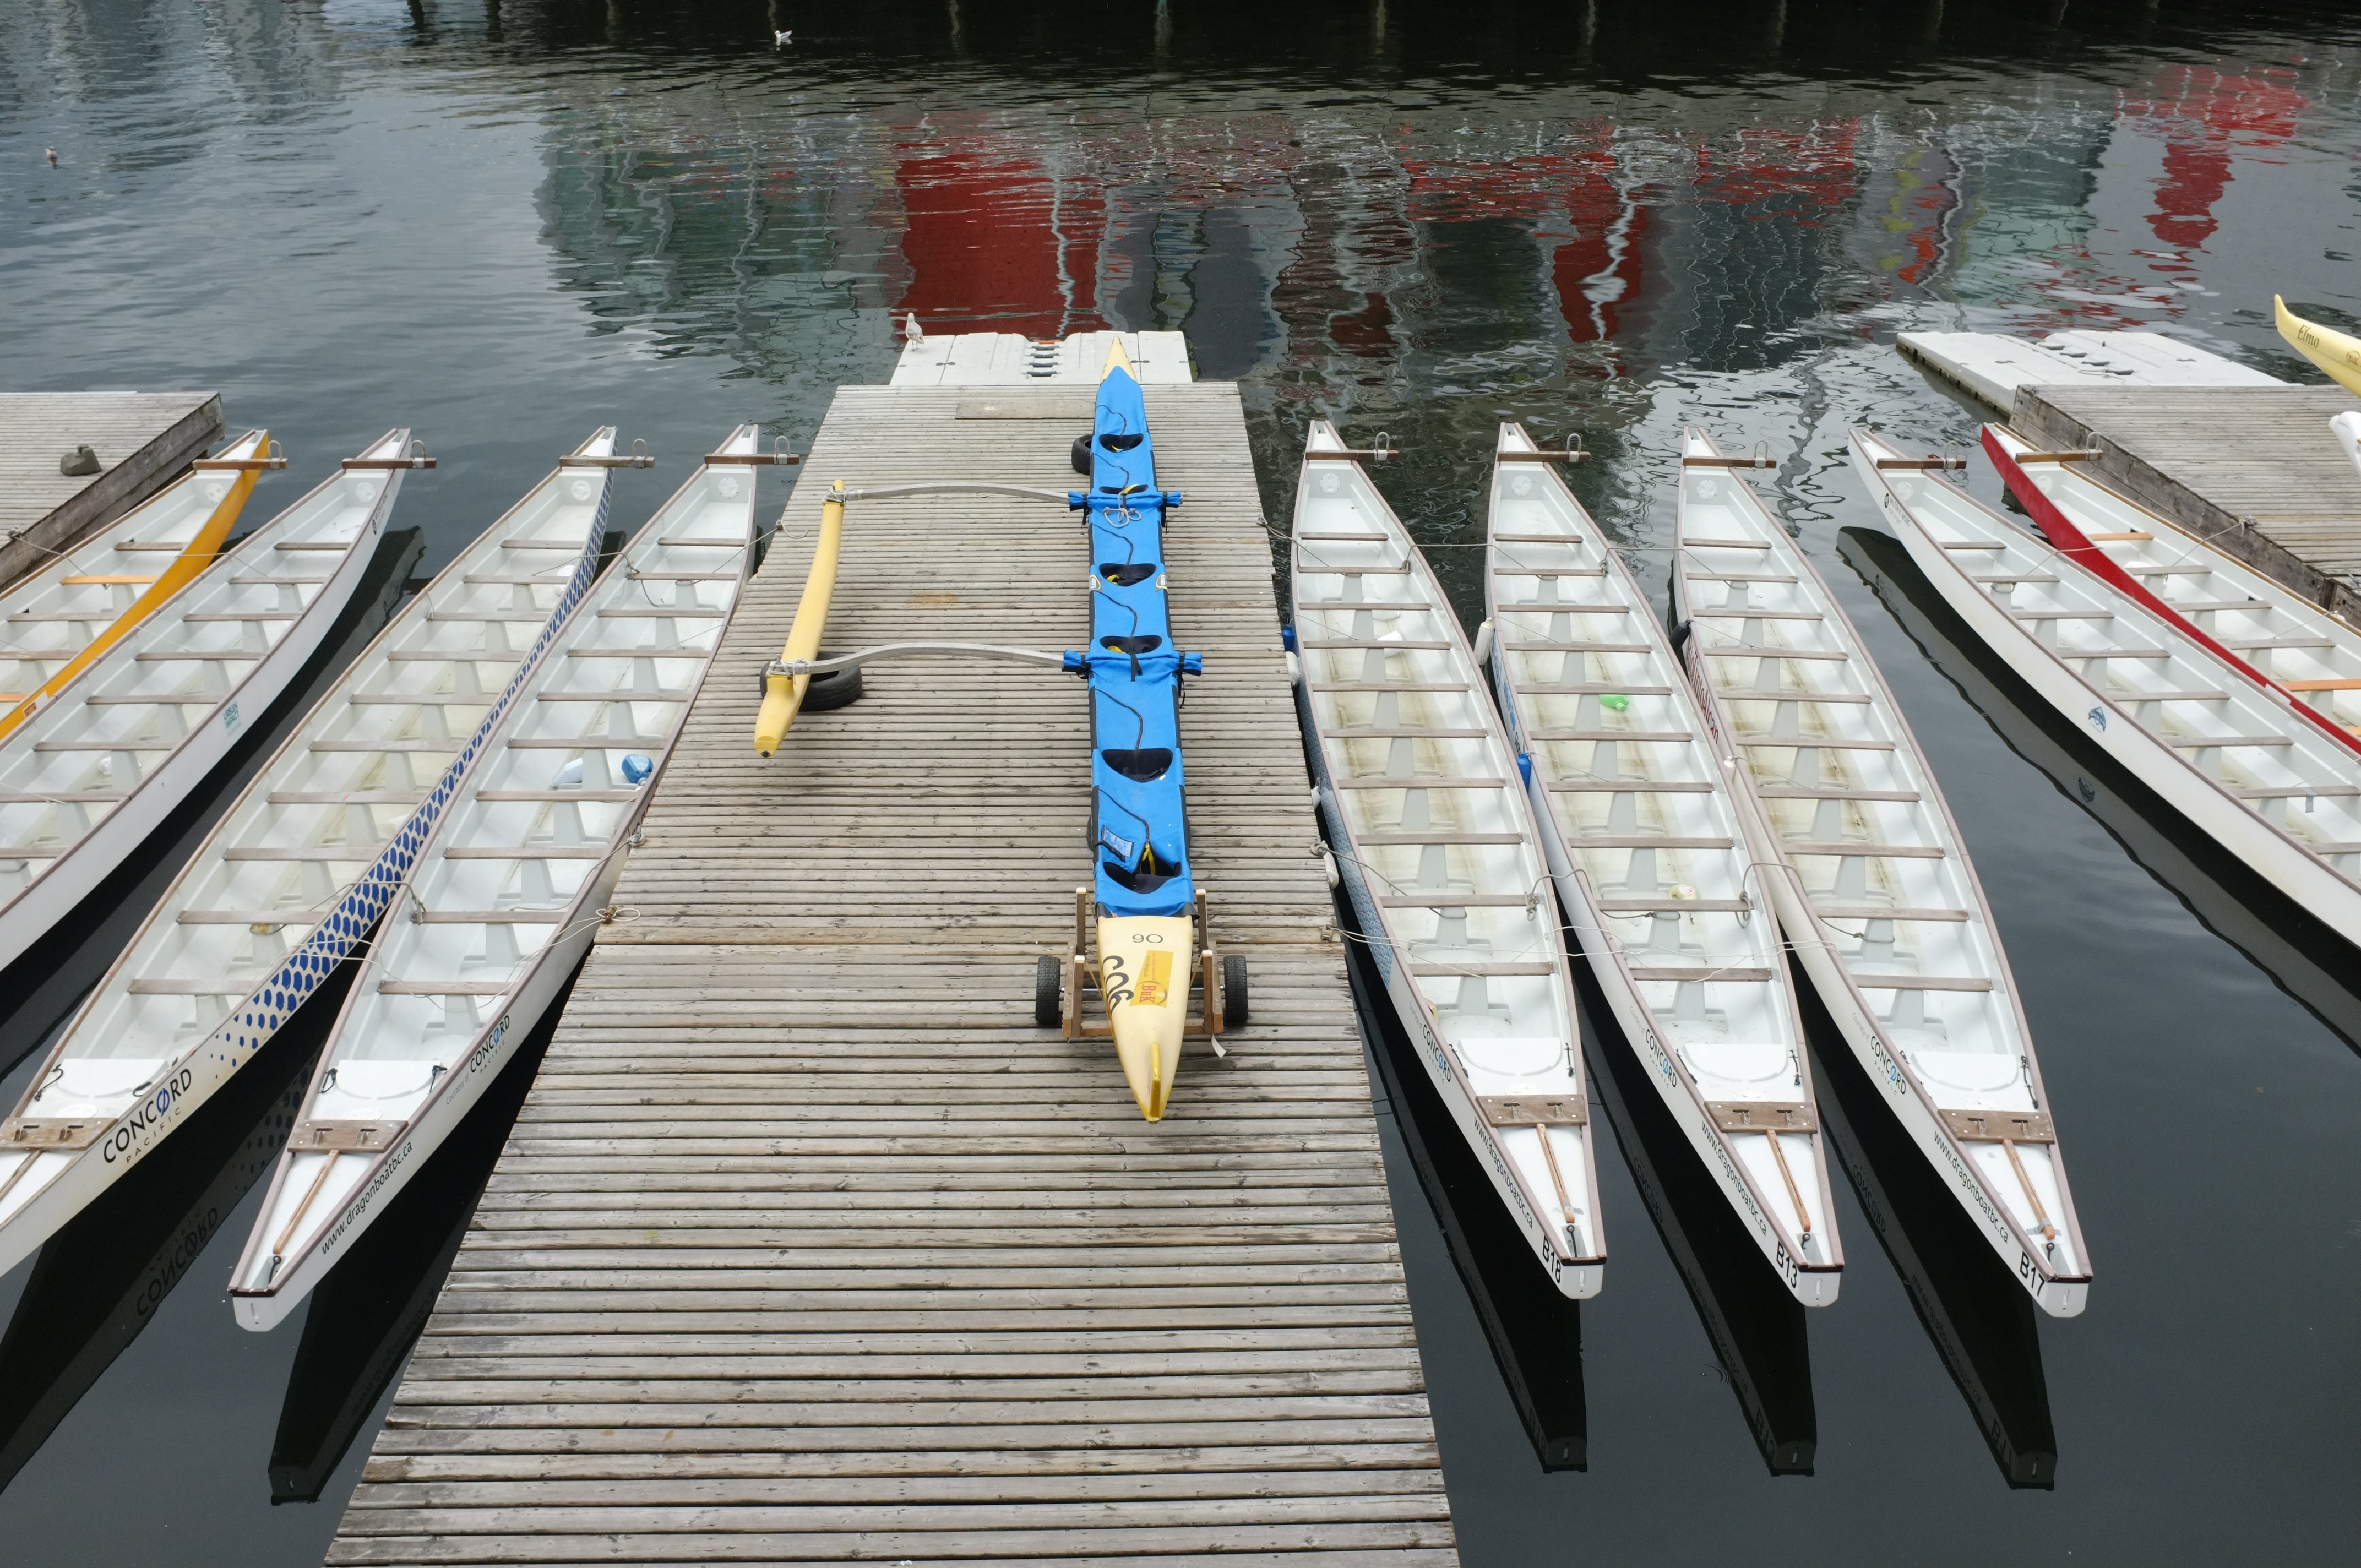 9 long dragon boats sitting empty in the water next to a dock